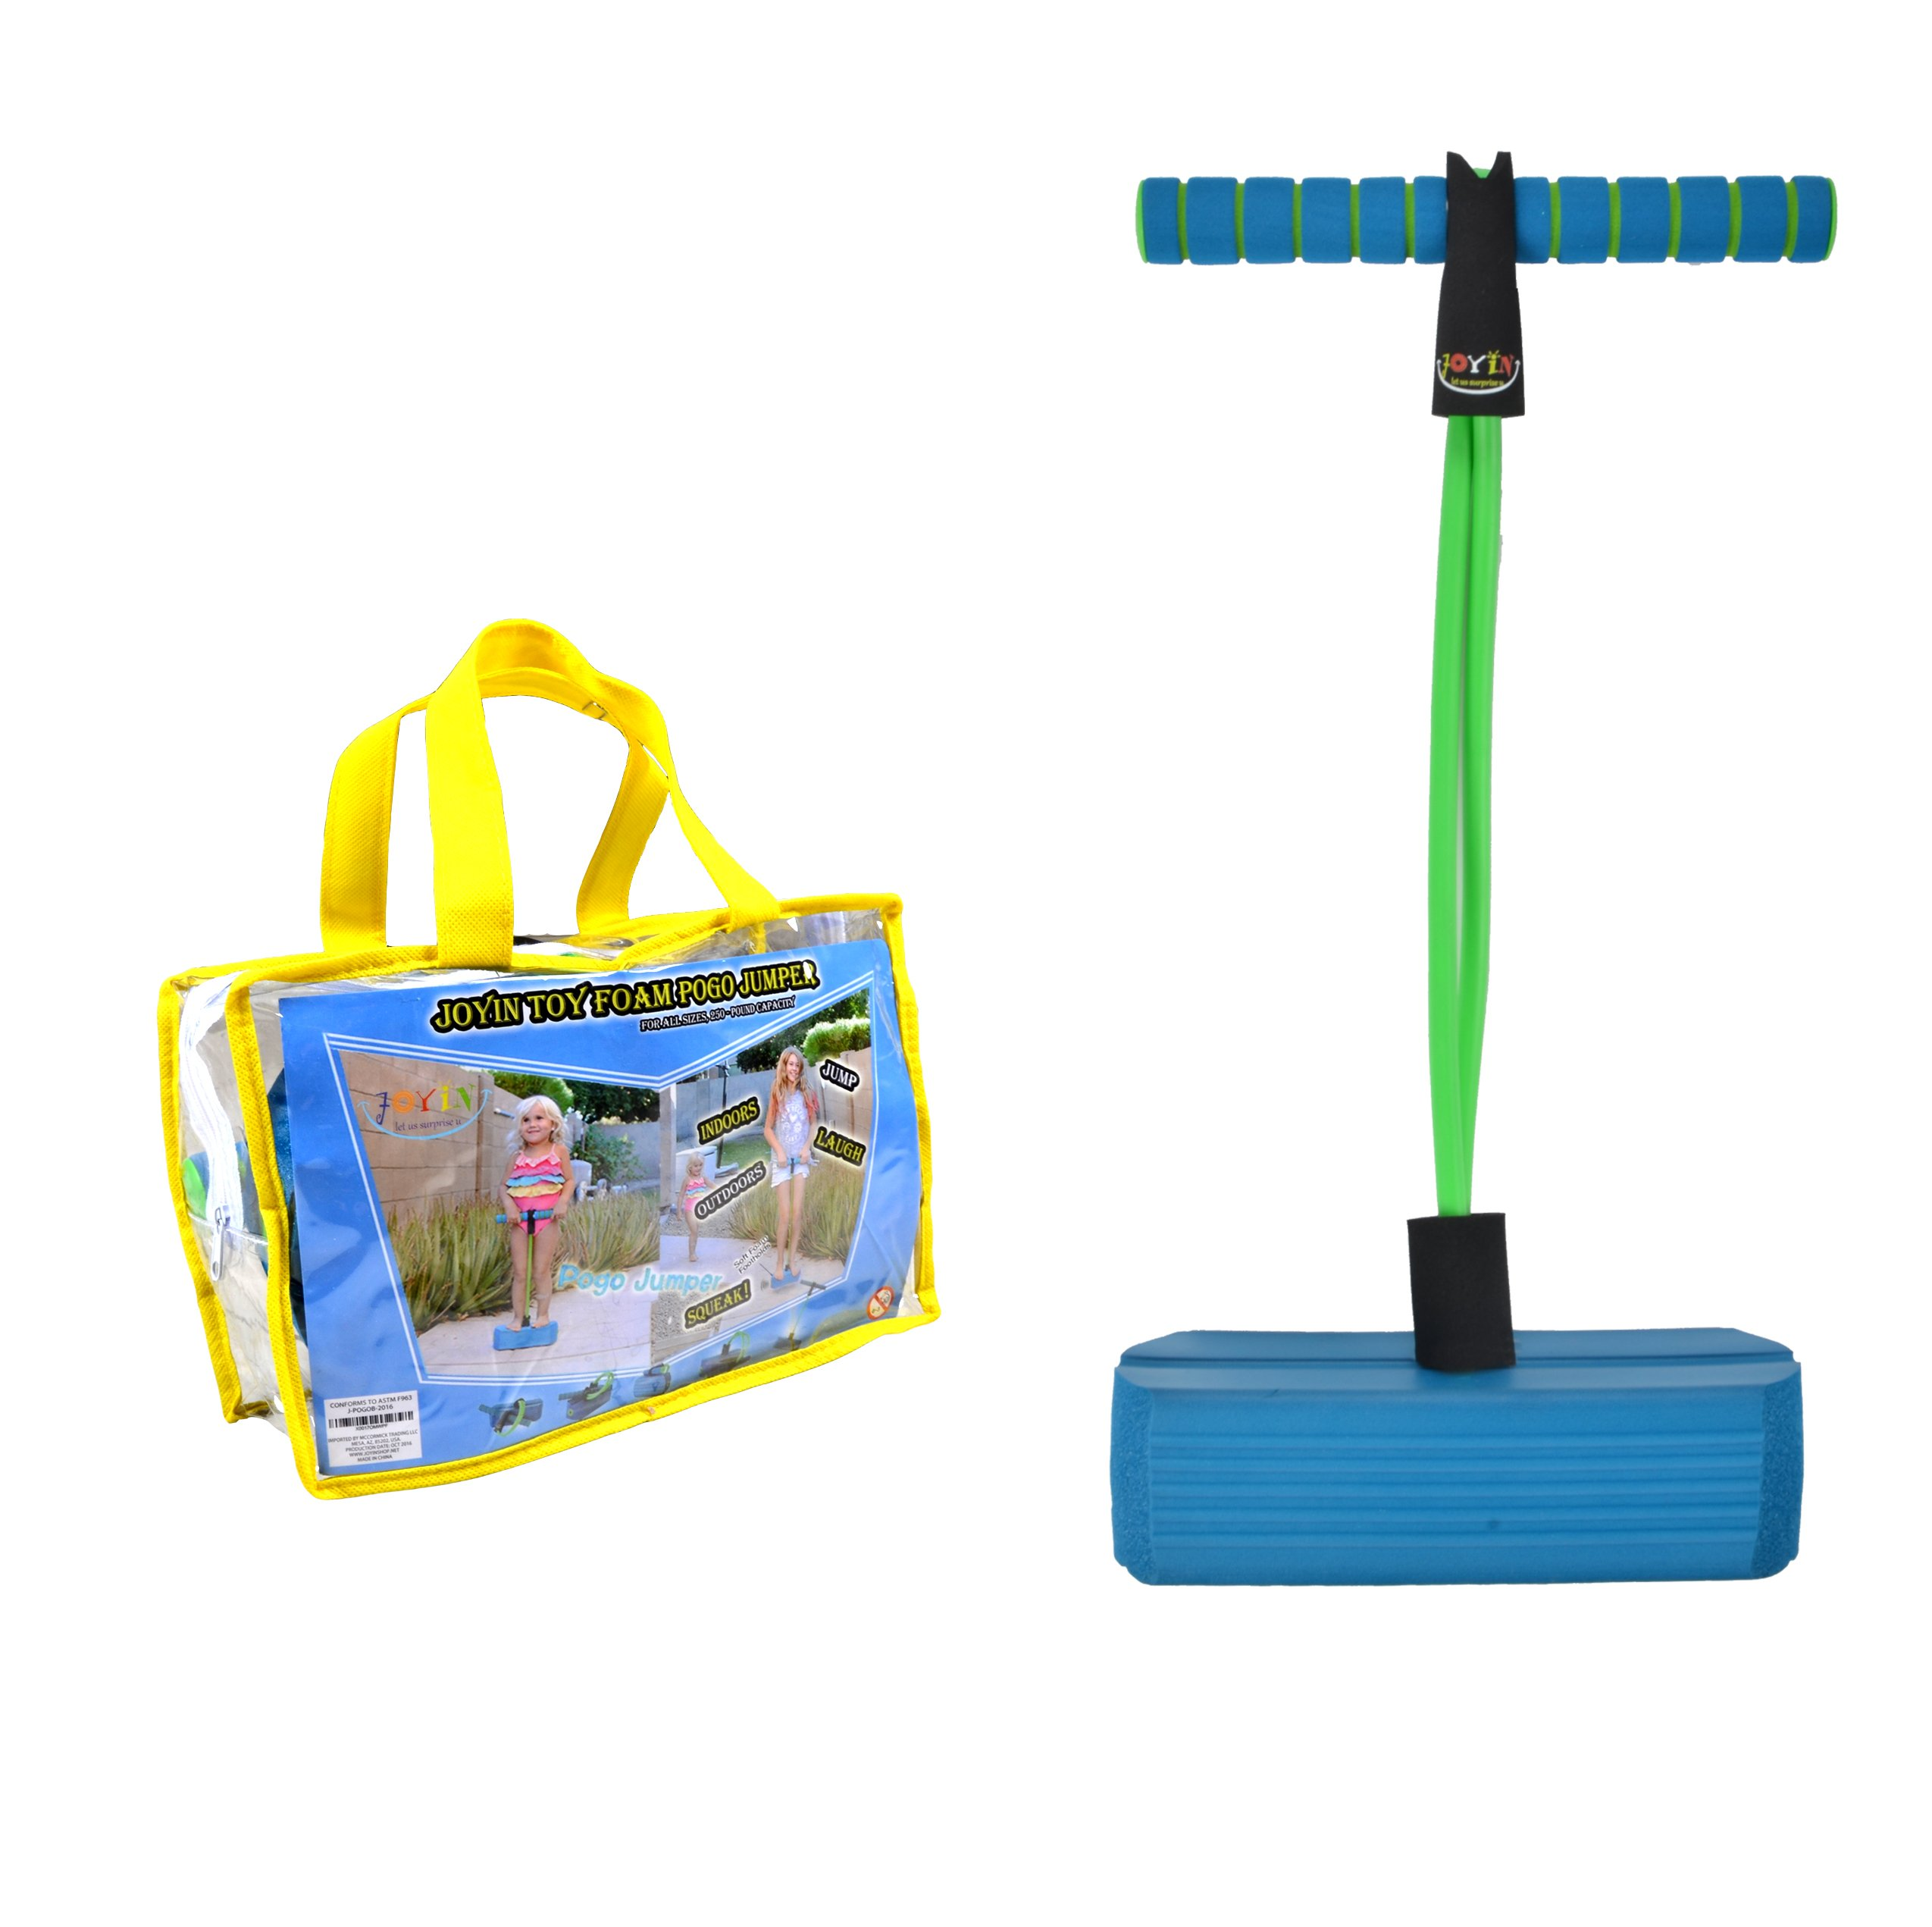 Joyin Toy Foam Pogo Jumper in Easy to Carry Zippered Bag- Safe and Fun Pogo Stick for All, 250 Pound Capacity (blue) by Joyin Toy